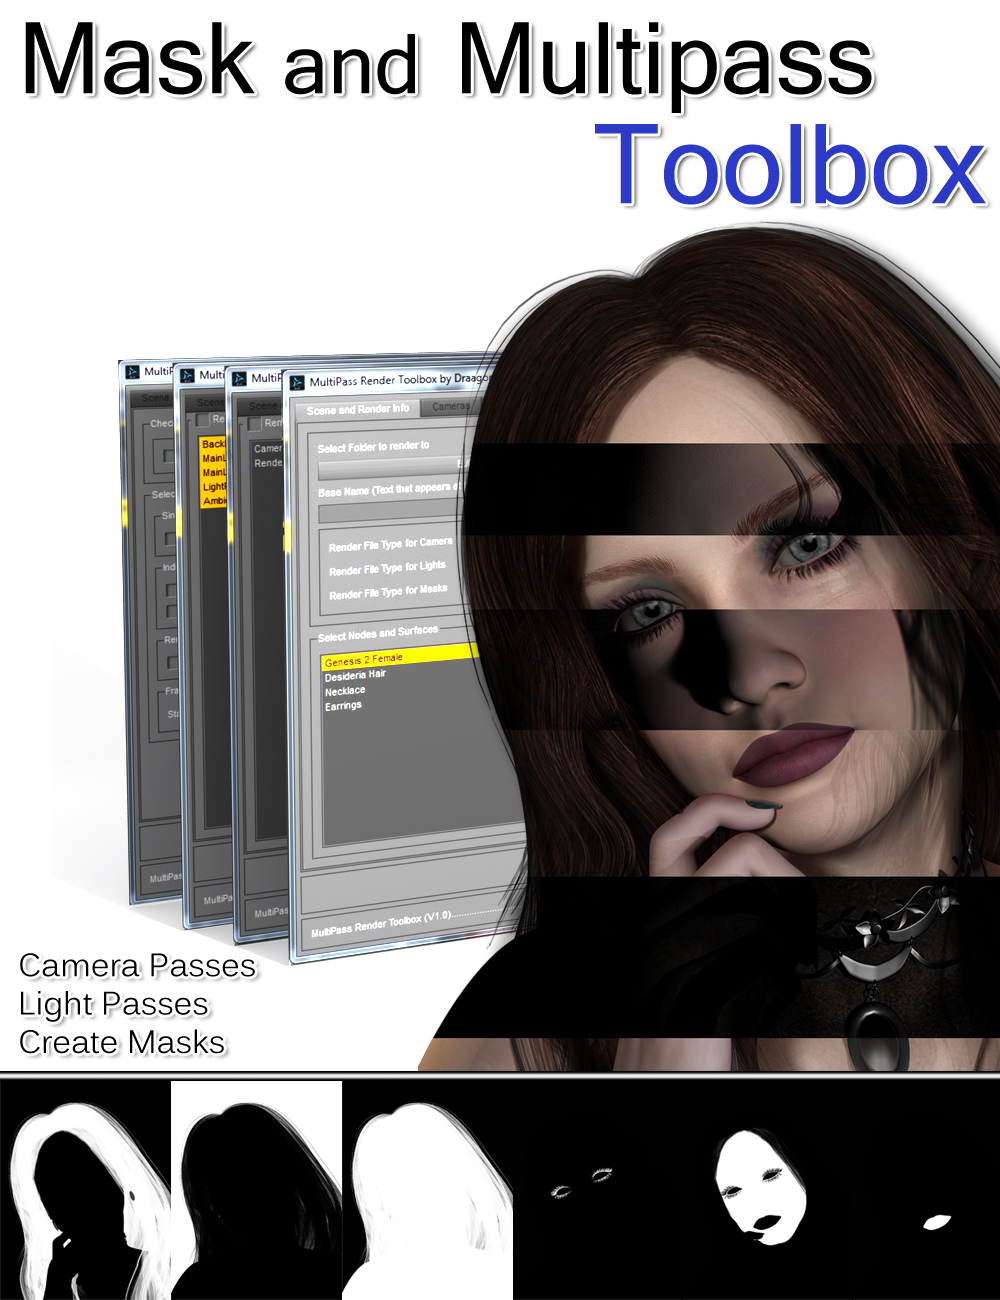 Mask and Multipass Toolbox by: DraagonStorm, 3D Models by Daz 3D